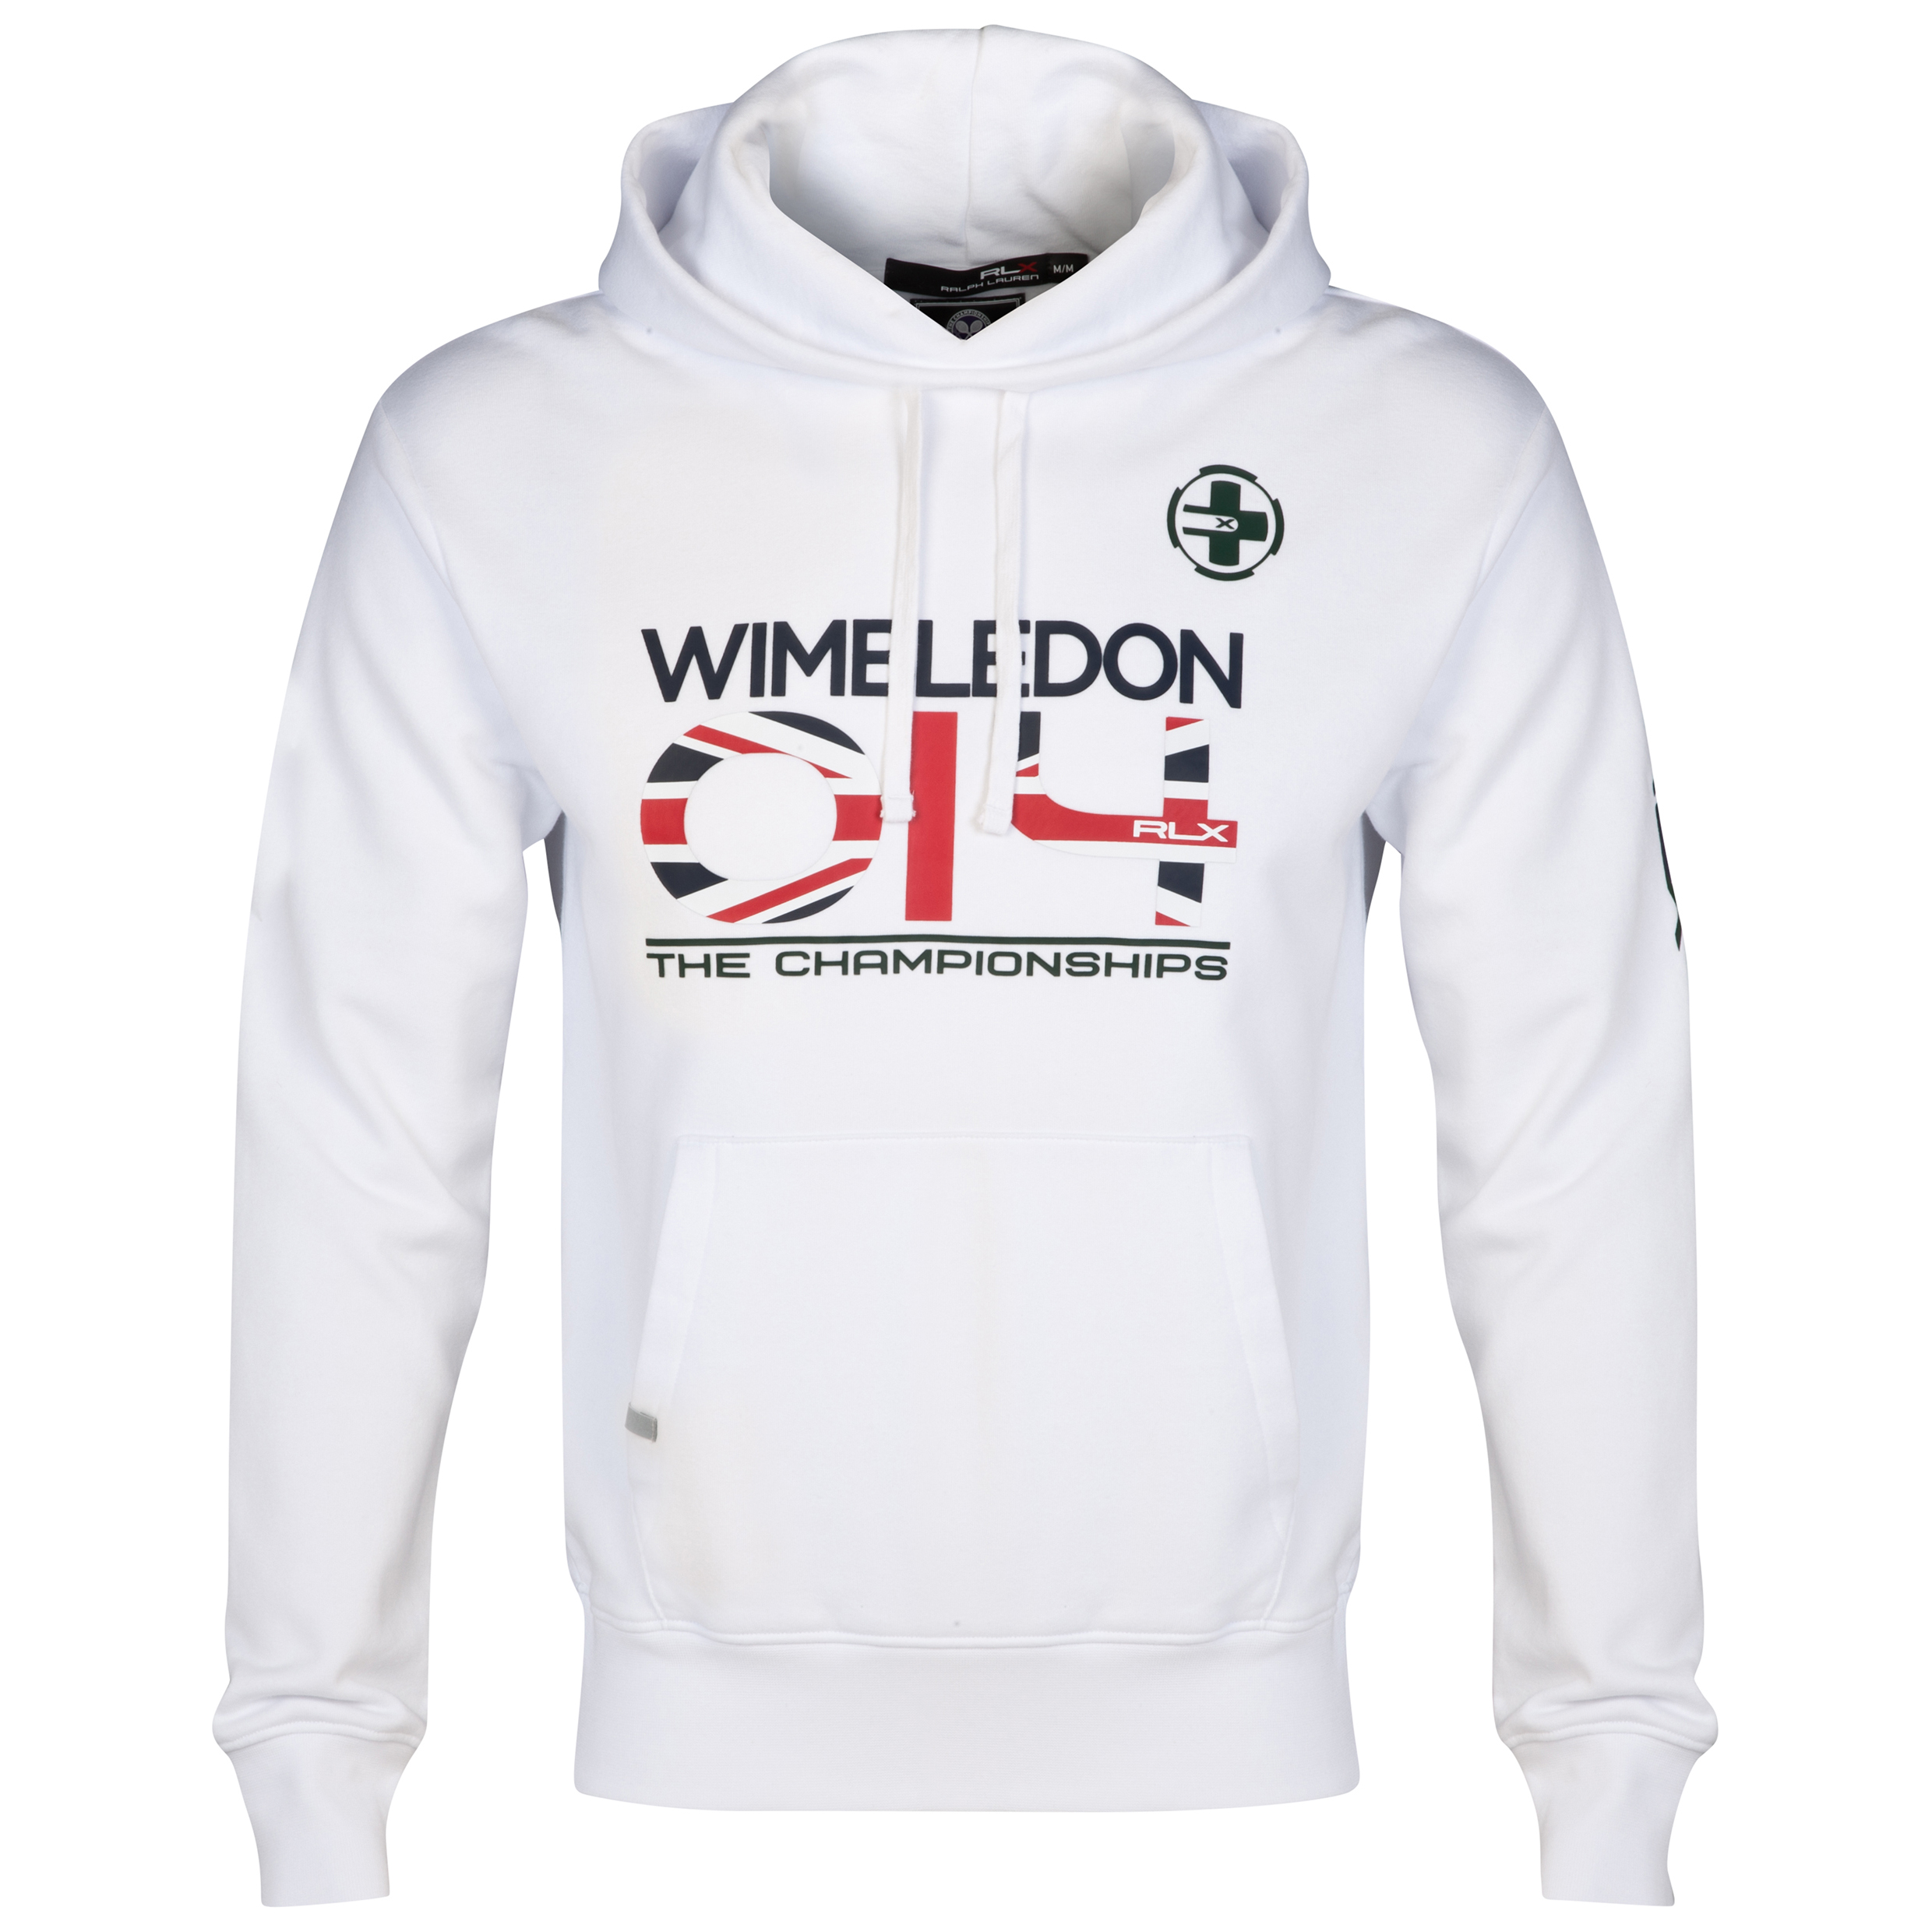 Wimbledon Polo Ralph Lauren Dated Fleece Hoody - Pure White